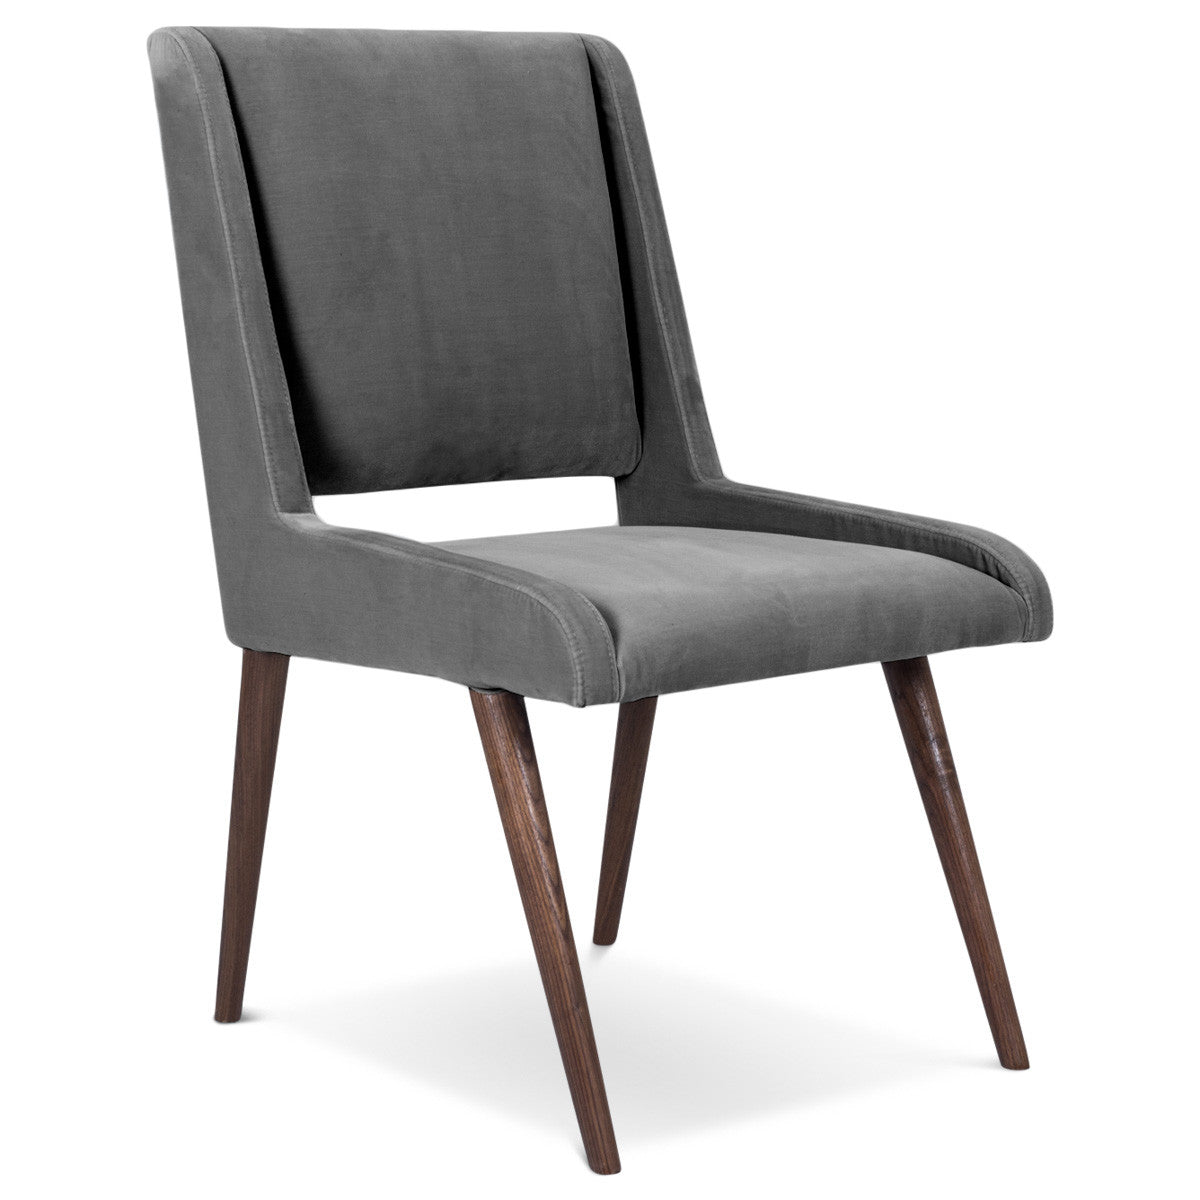 Superieur Mid Century Dining Chair In Velvet